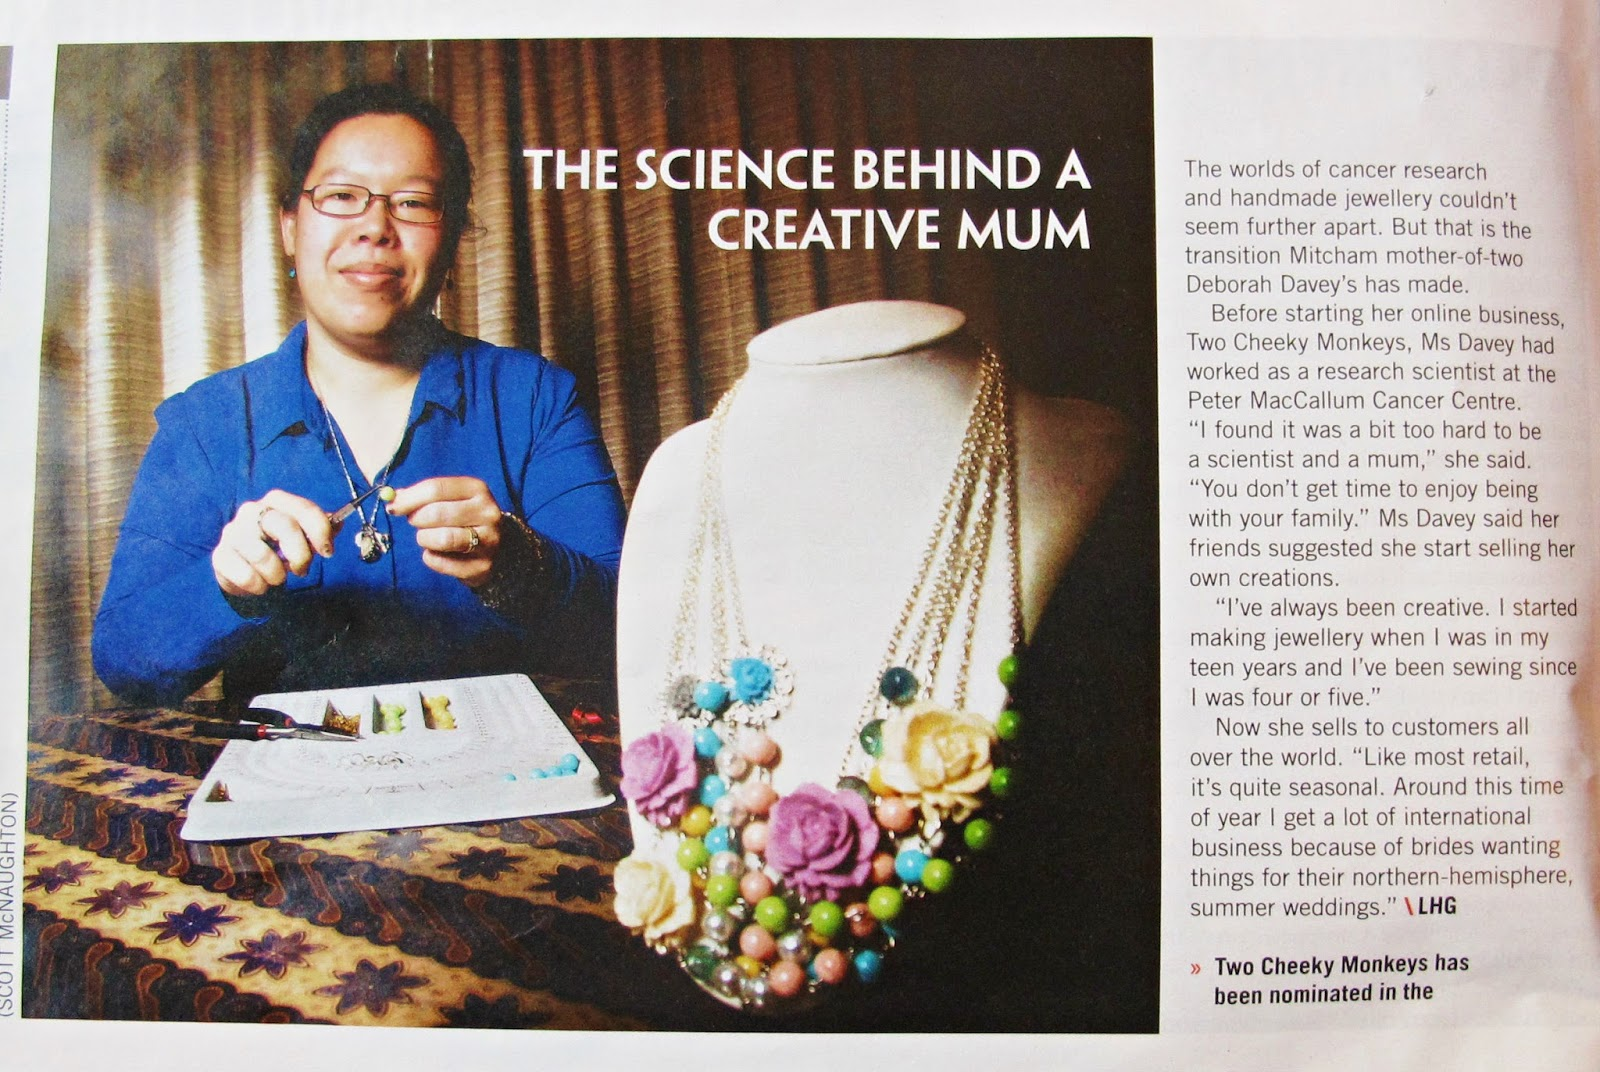 image two cheeky monkeys weekly review eastern paper magazine jewellery ausmumpreneur award